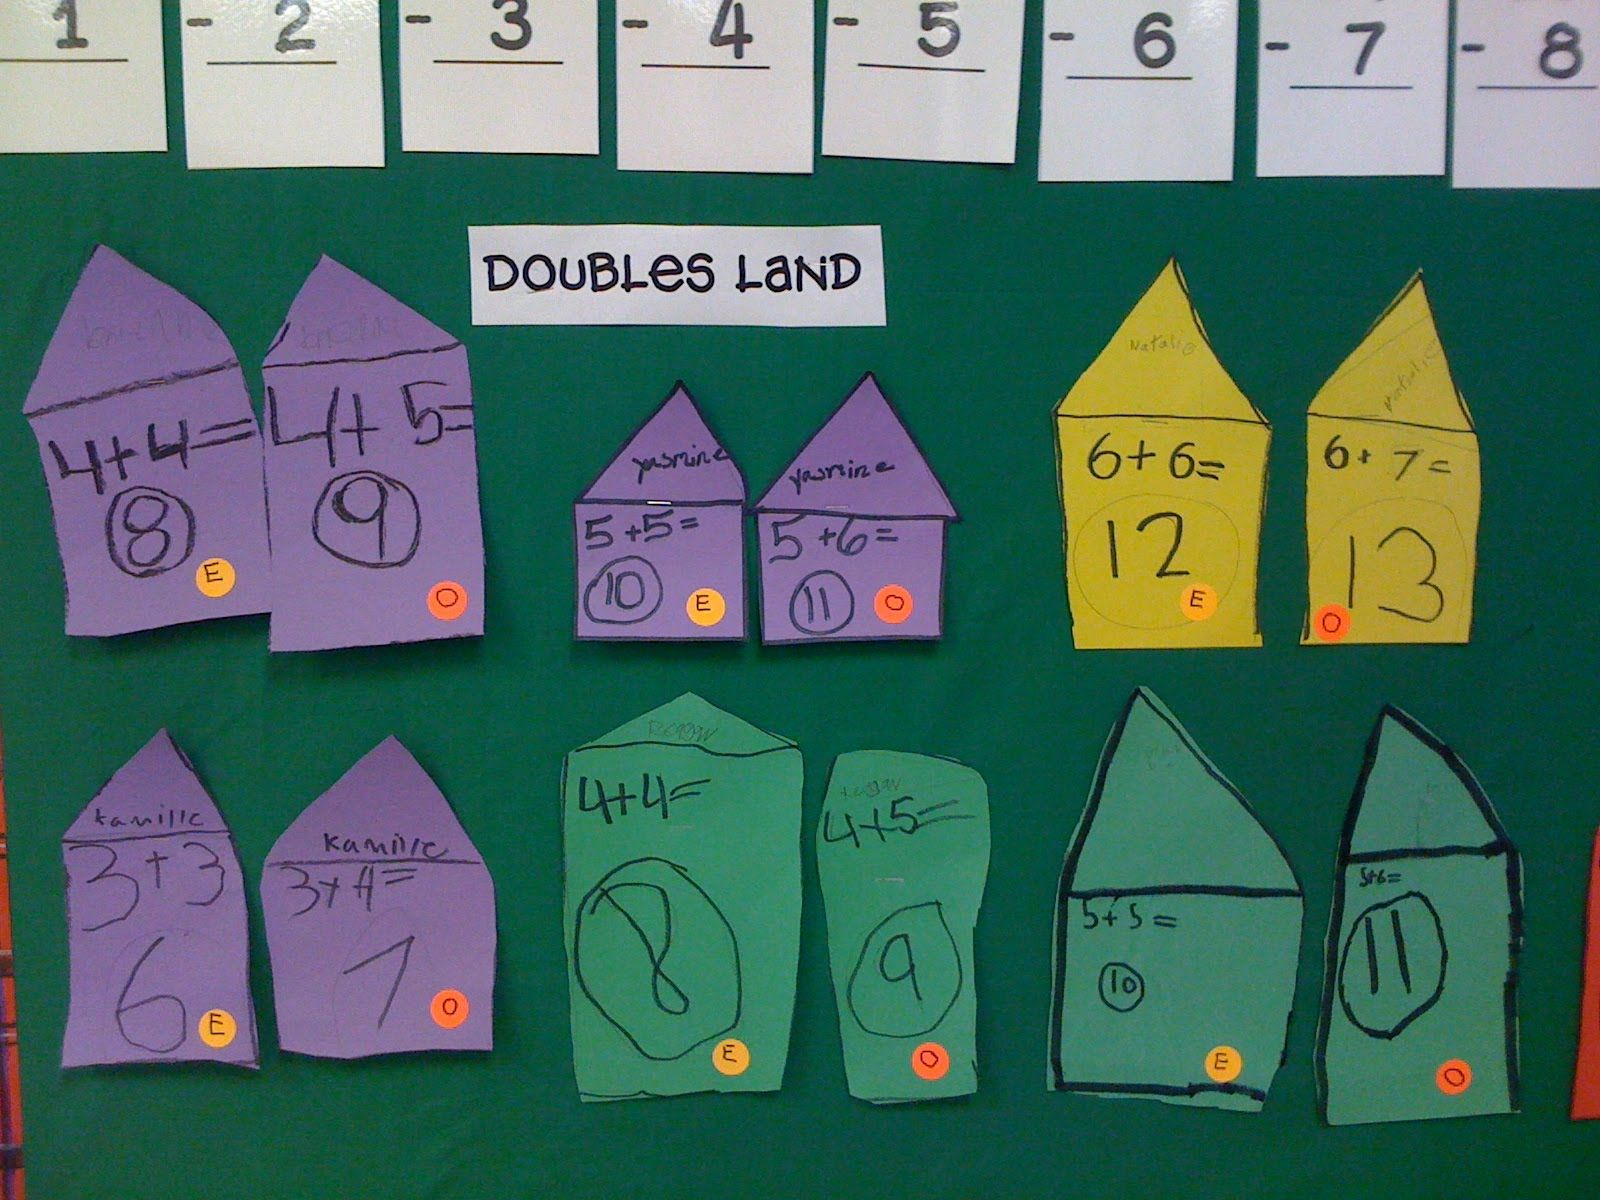 Doubles And Doubles Plus One Neighborhood